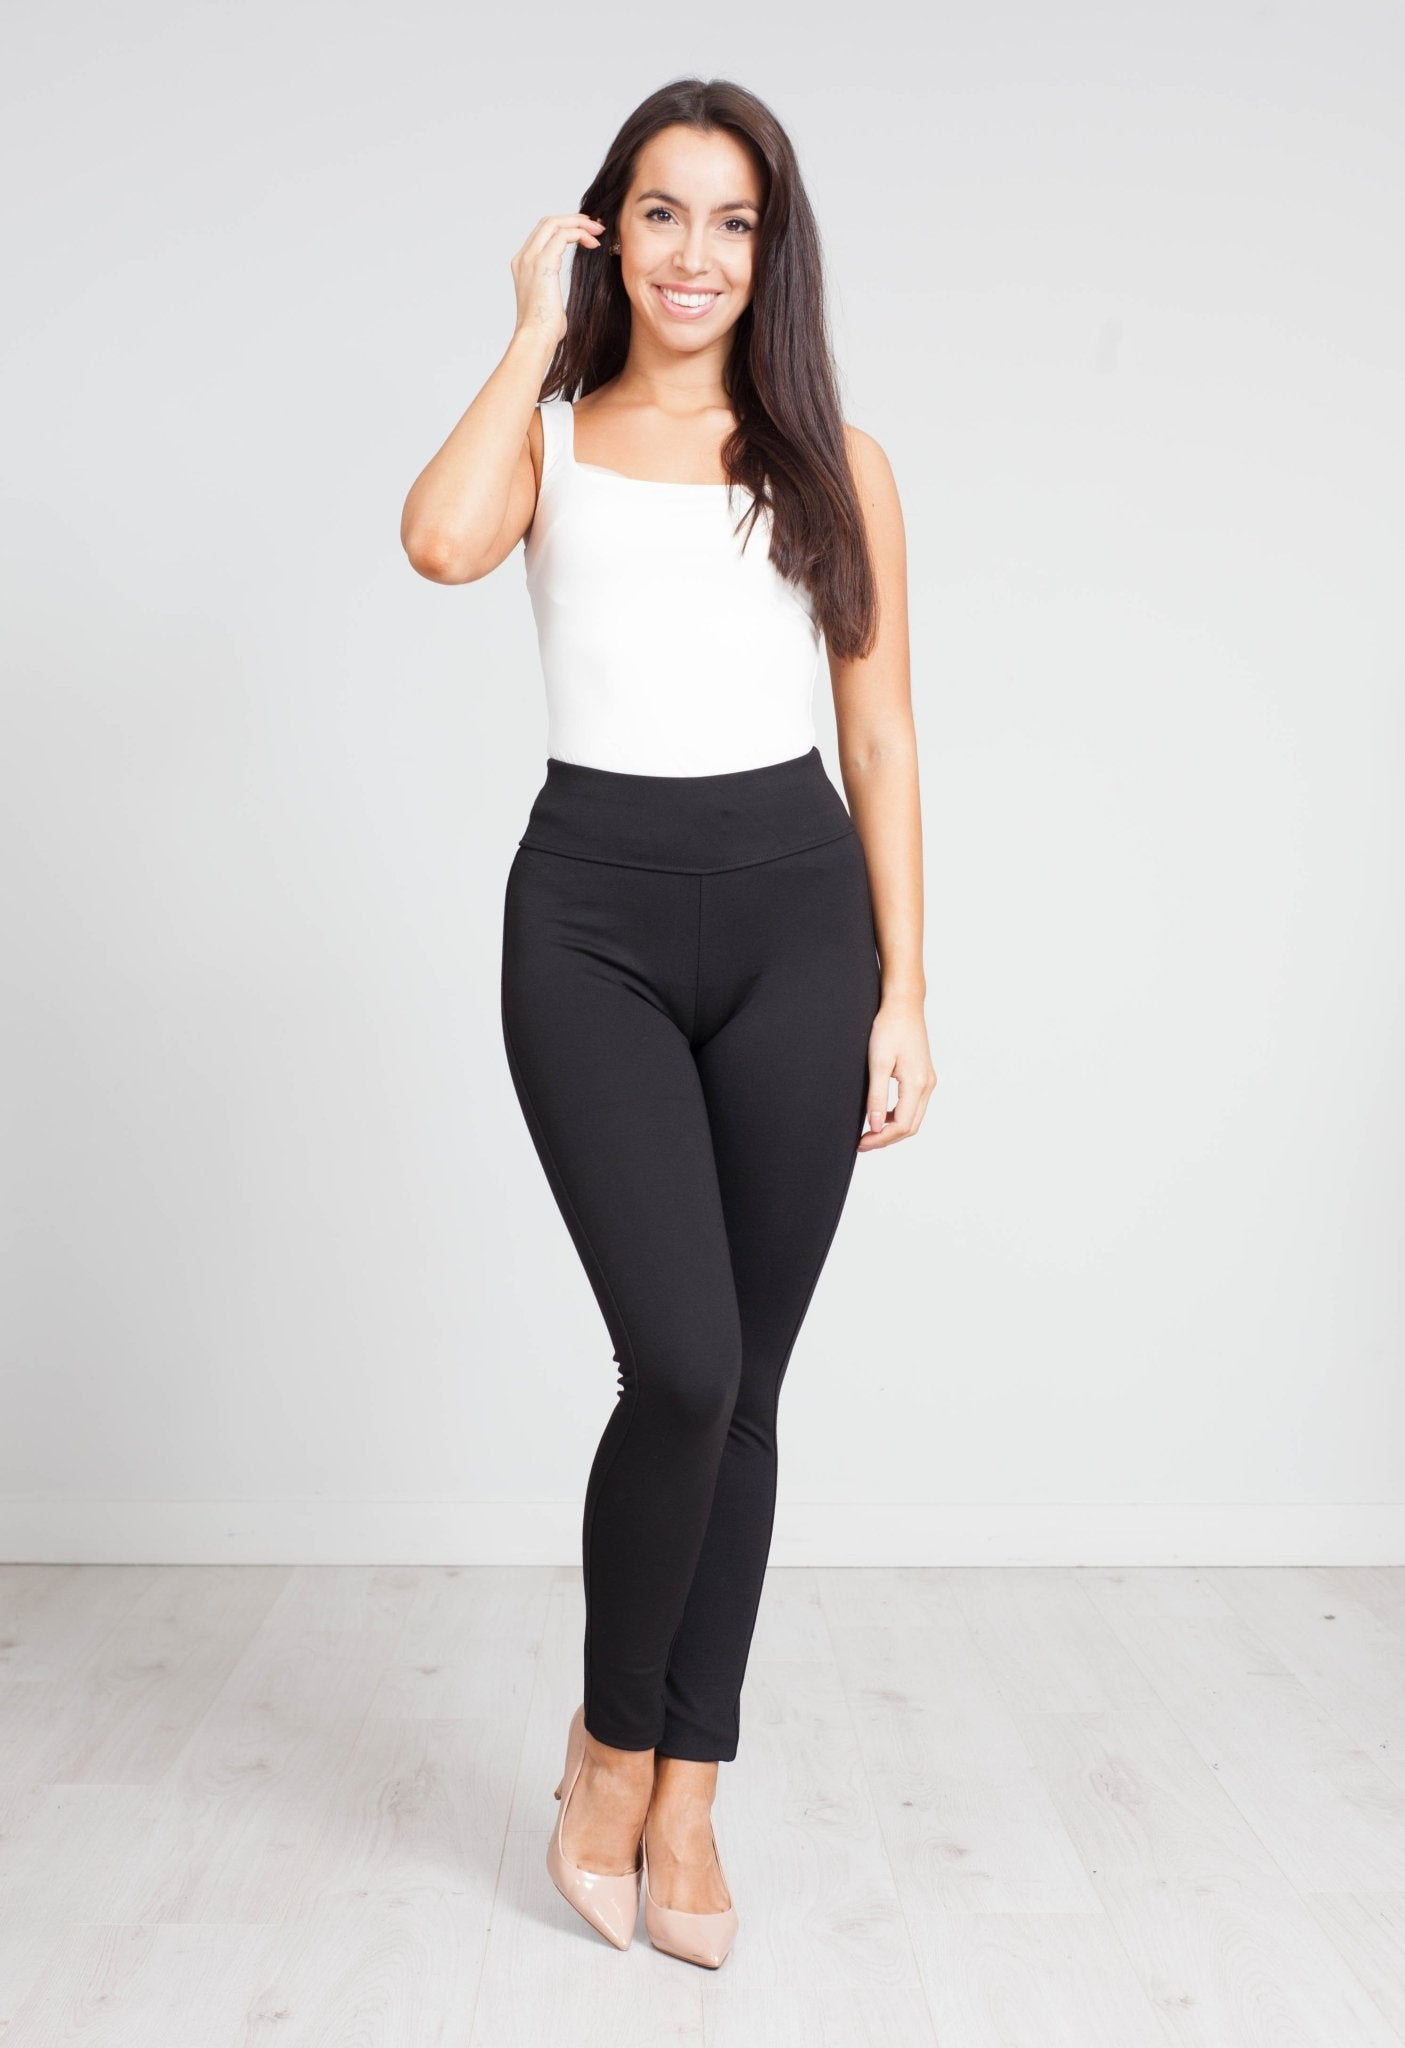 Priya Luxe Sport Legging In Black - The Walk in Wardrobe